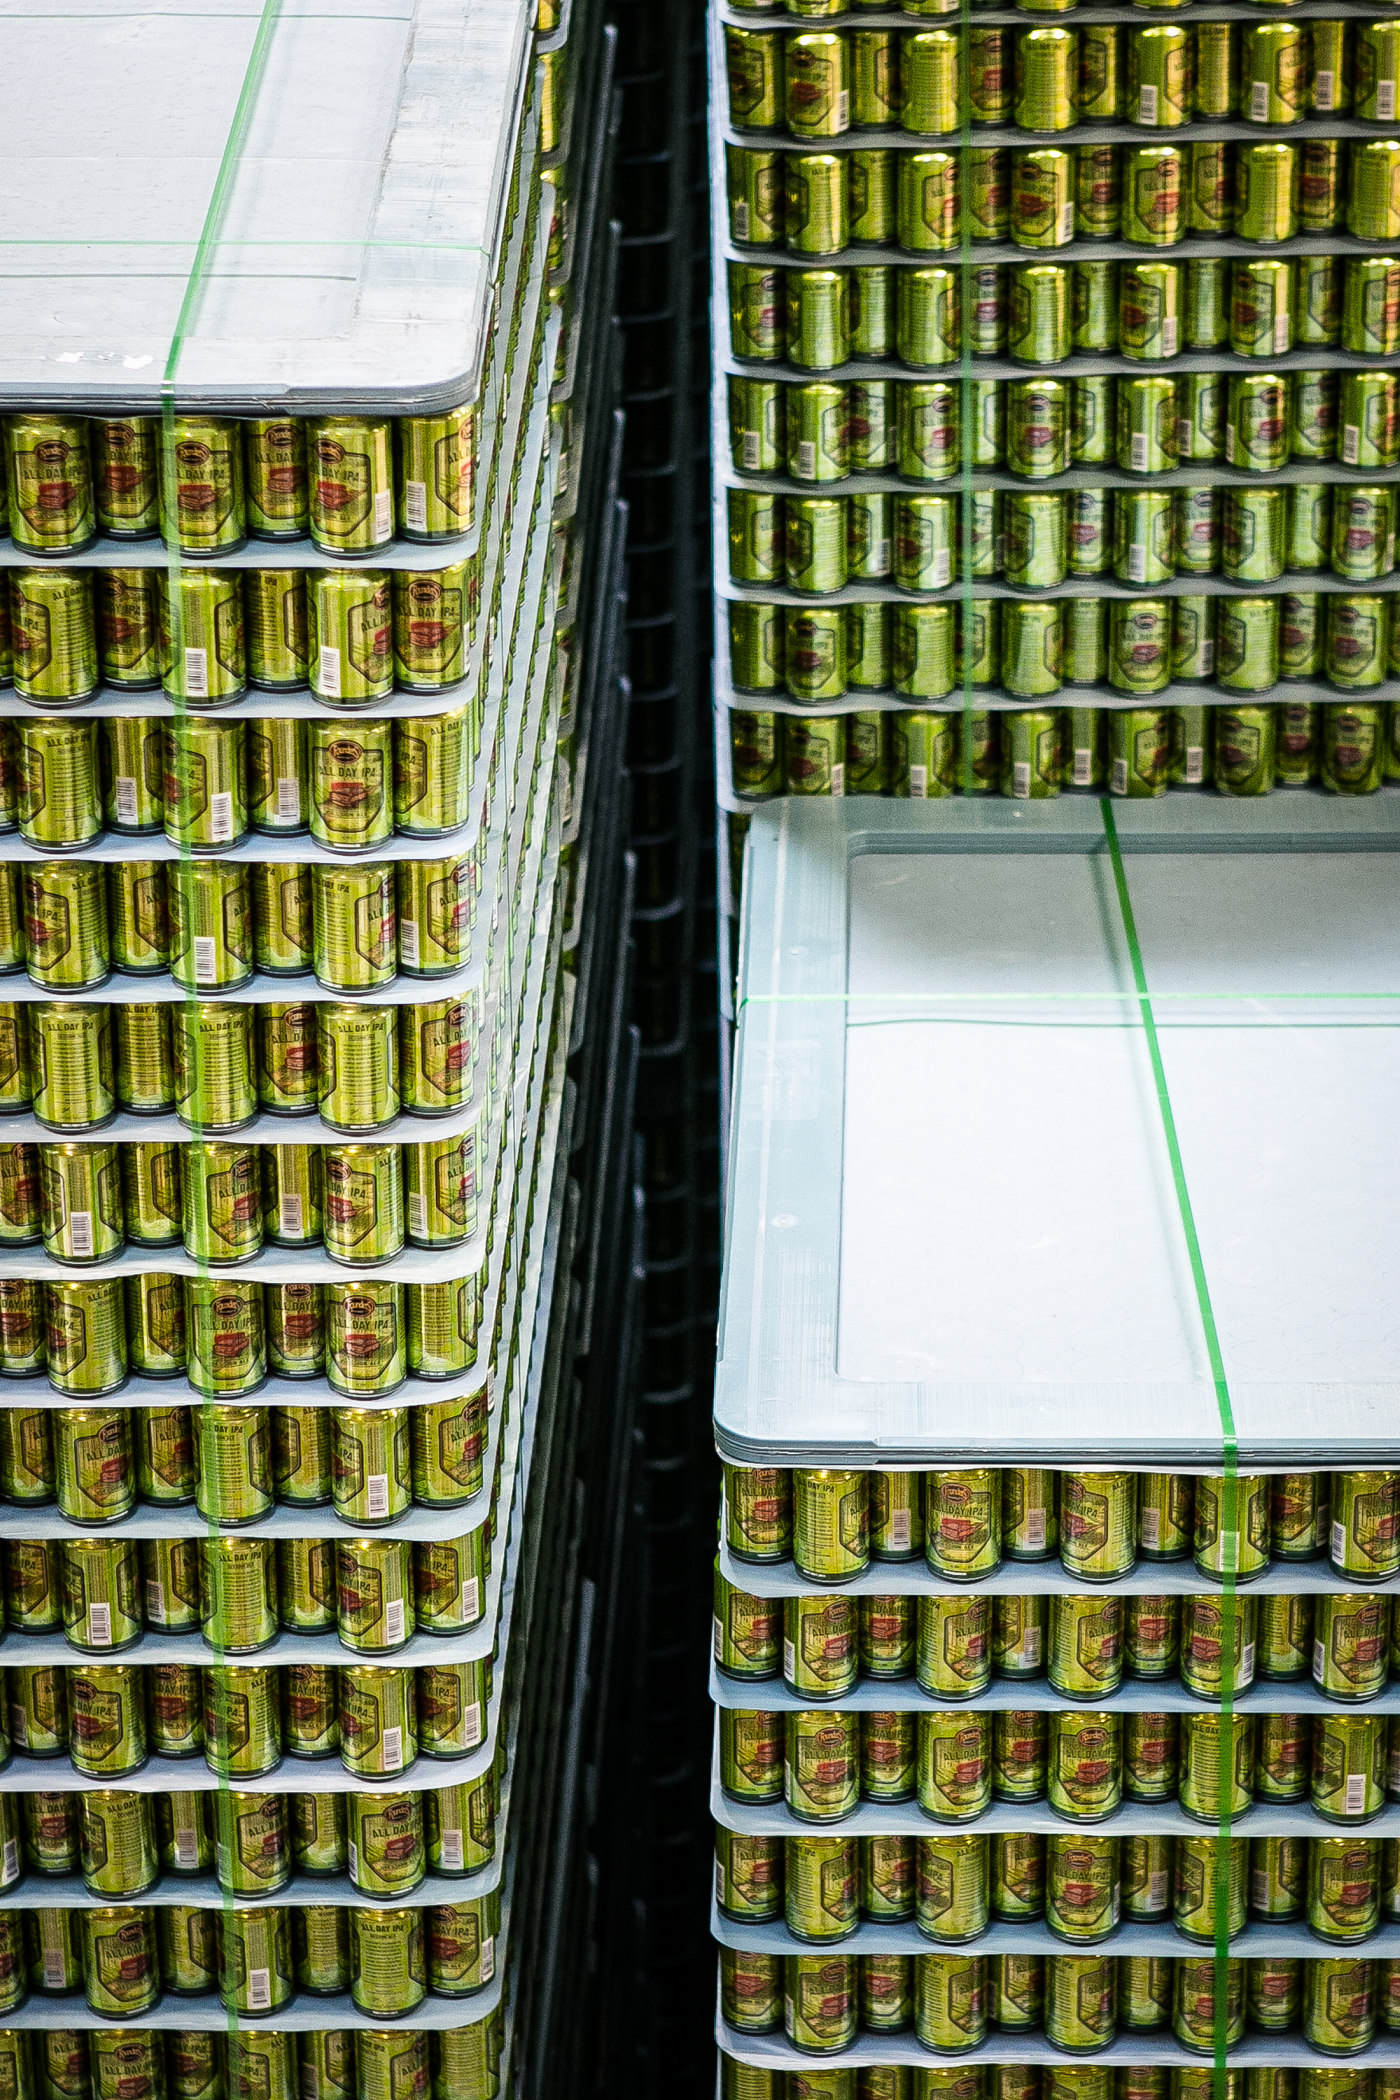 Pallets of All Day IPA cans at the ready...